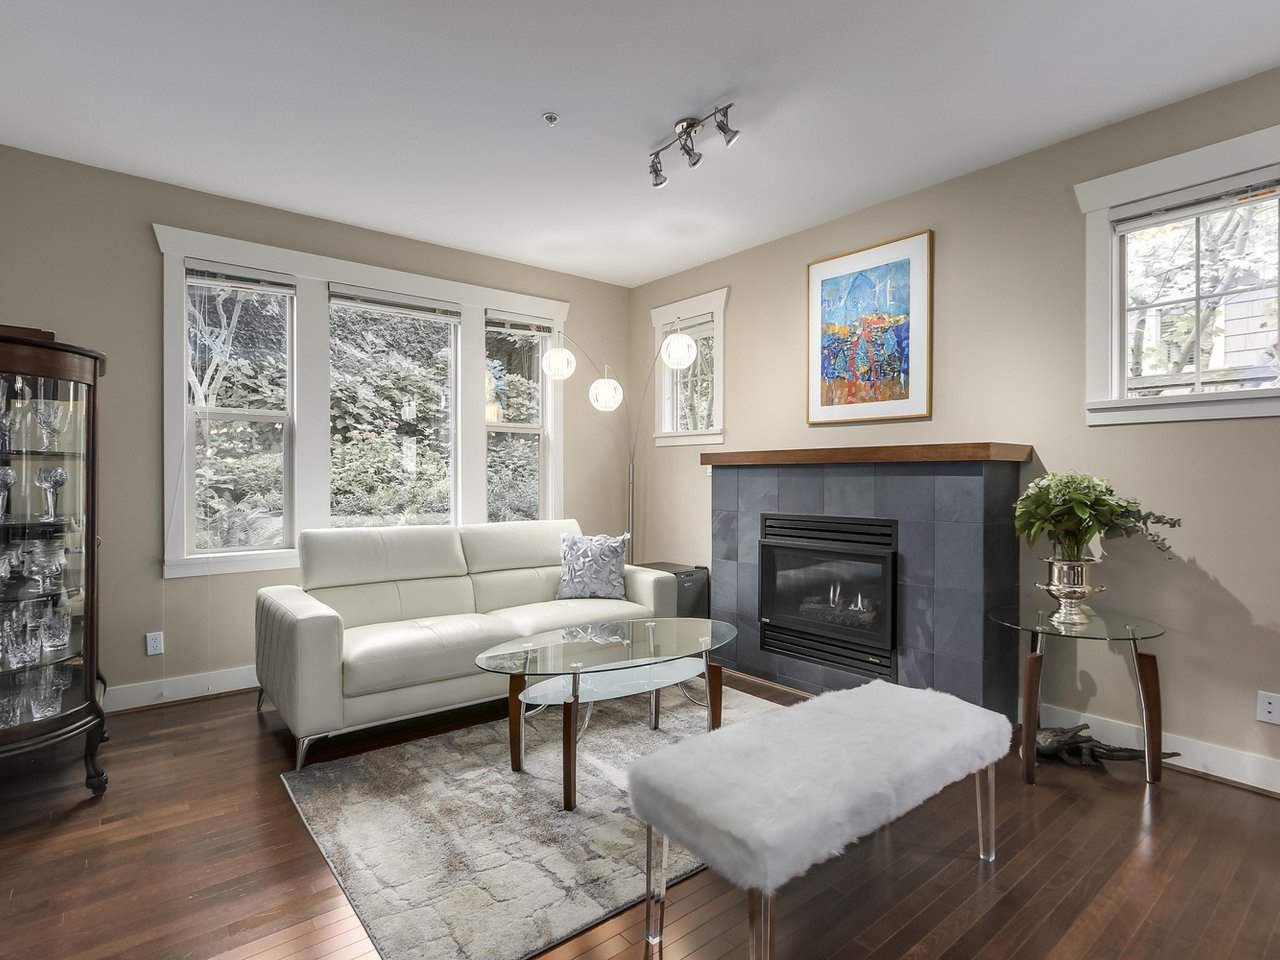 """Main Photo: 229 E QUEENS Road in North Vancouver: Upper Lonsdale Townhouse for sale in """"QUEENS COURT"""" : MLS®# R2362718"""